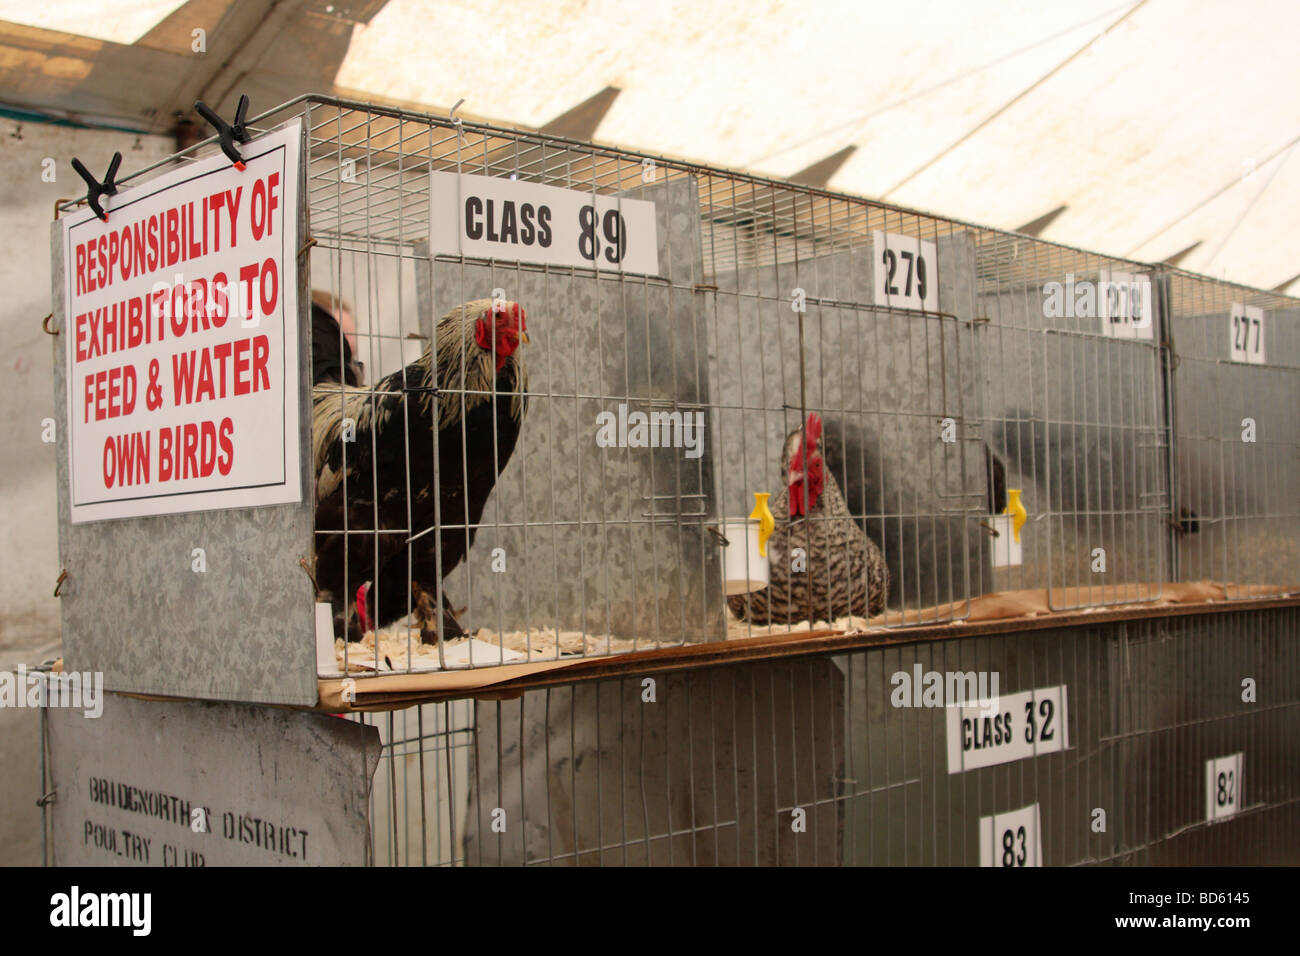 Poultry in cages at the Bakewell Show, Bakewell, Derbyshire, England, U.K. - Stock Image